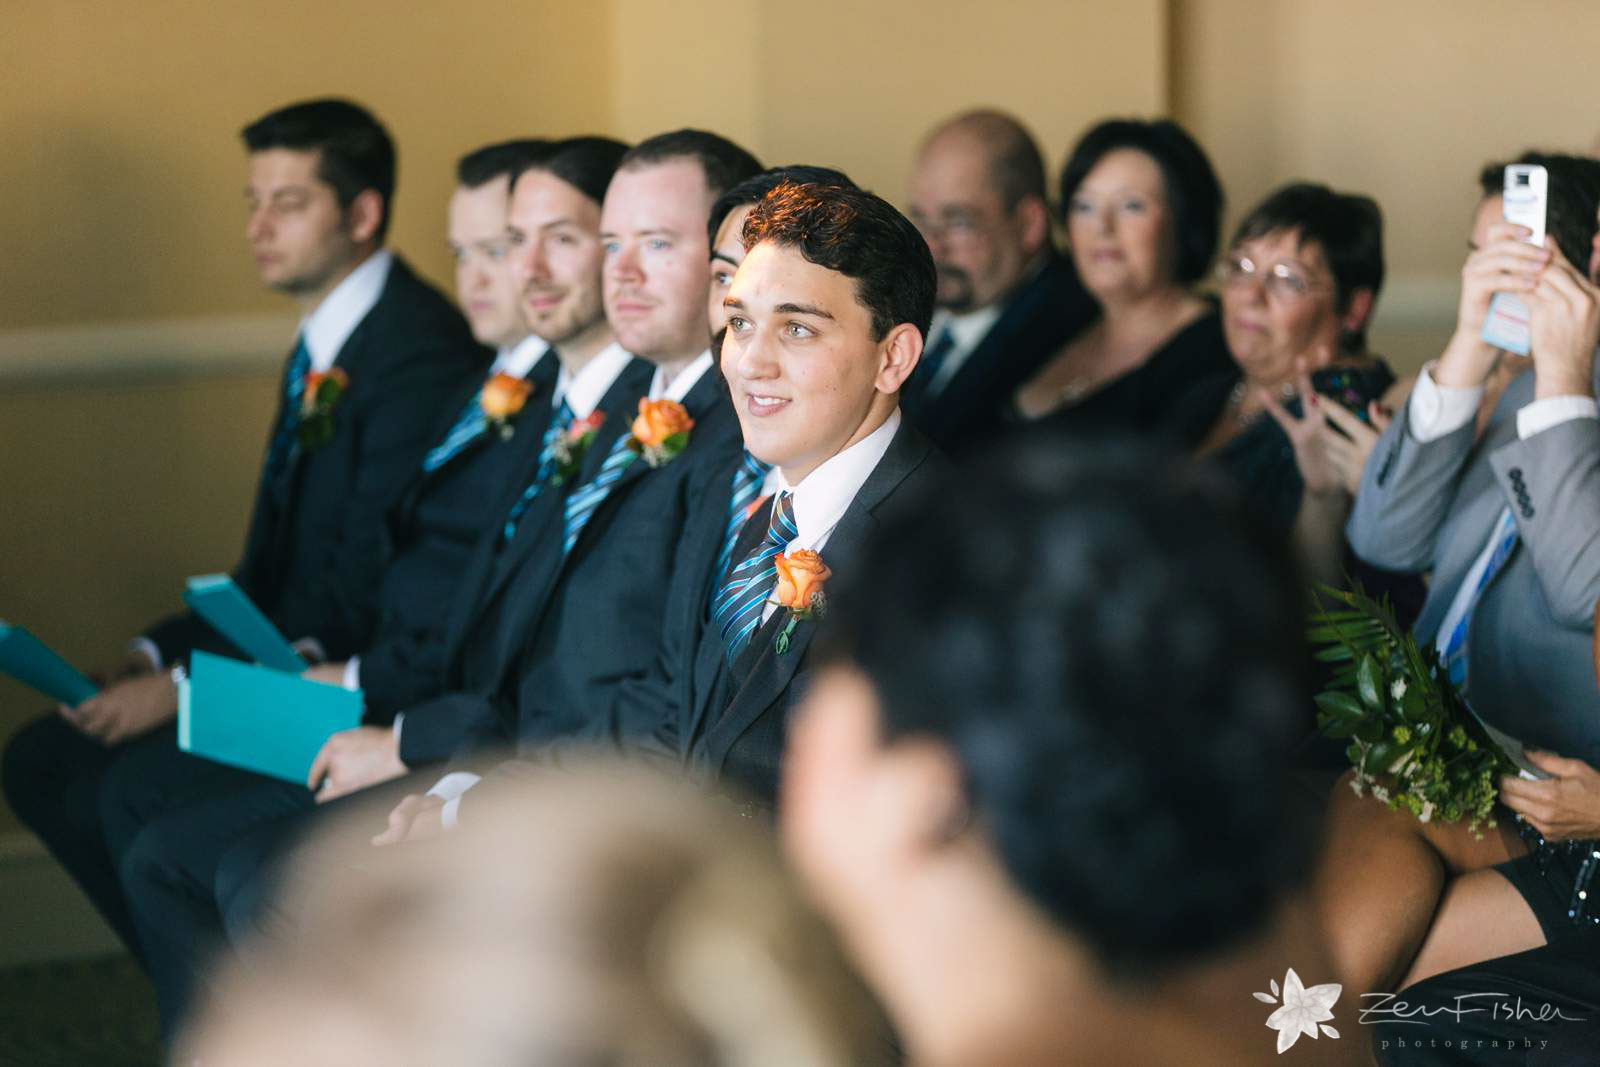 Groom's brother smiling and watching the ceremony from the front row. Boutinerre with orange rose